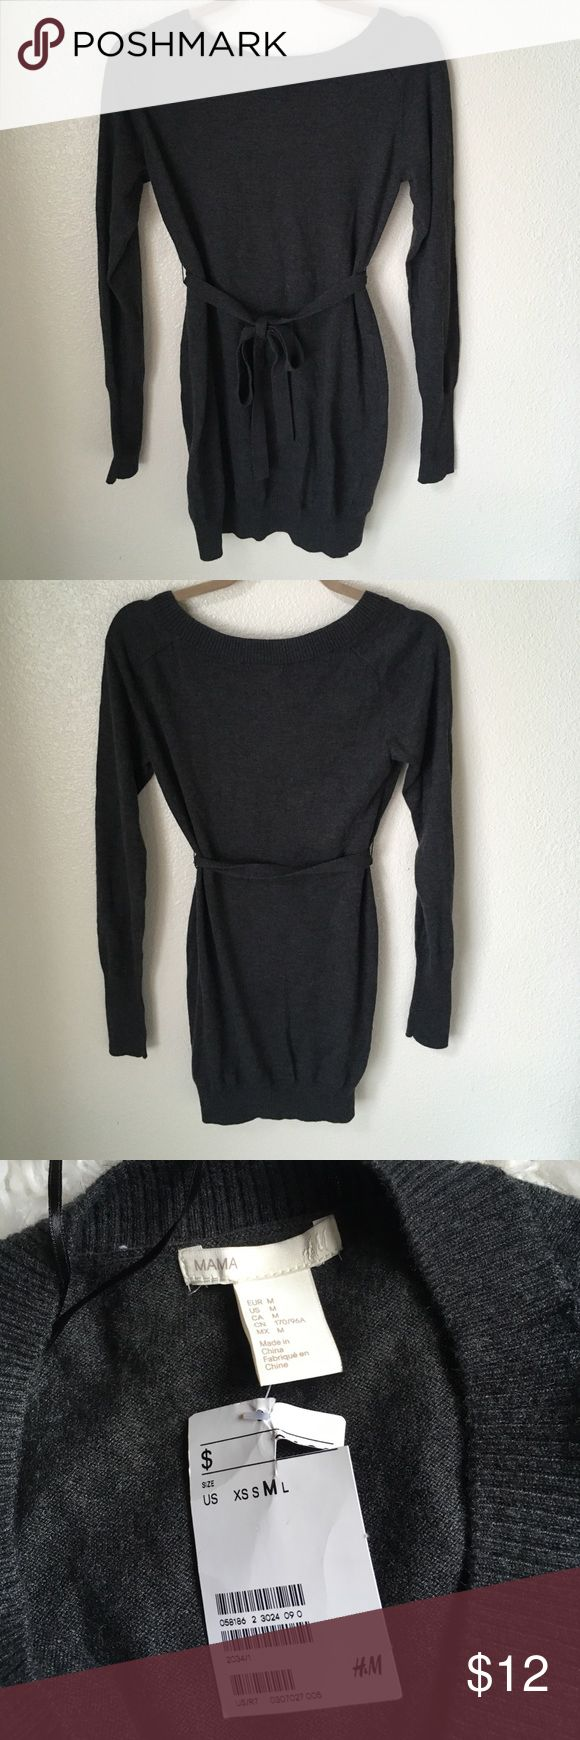 """H&M Maternity Long Sweater H&M size medium long maternity knit sweater. It comes with a matching belt. NWT. Armpit to armpit about 17 in across and about 29 in long. It's a maternity item, but could easily be worn by a non pregnant person 😜 there is no indication on the item that it's a maternity item besides the word """"mama"""" on the label ☺️ H&M Sweaters"""